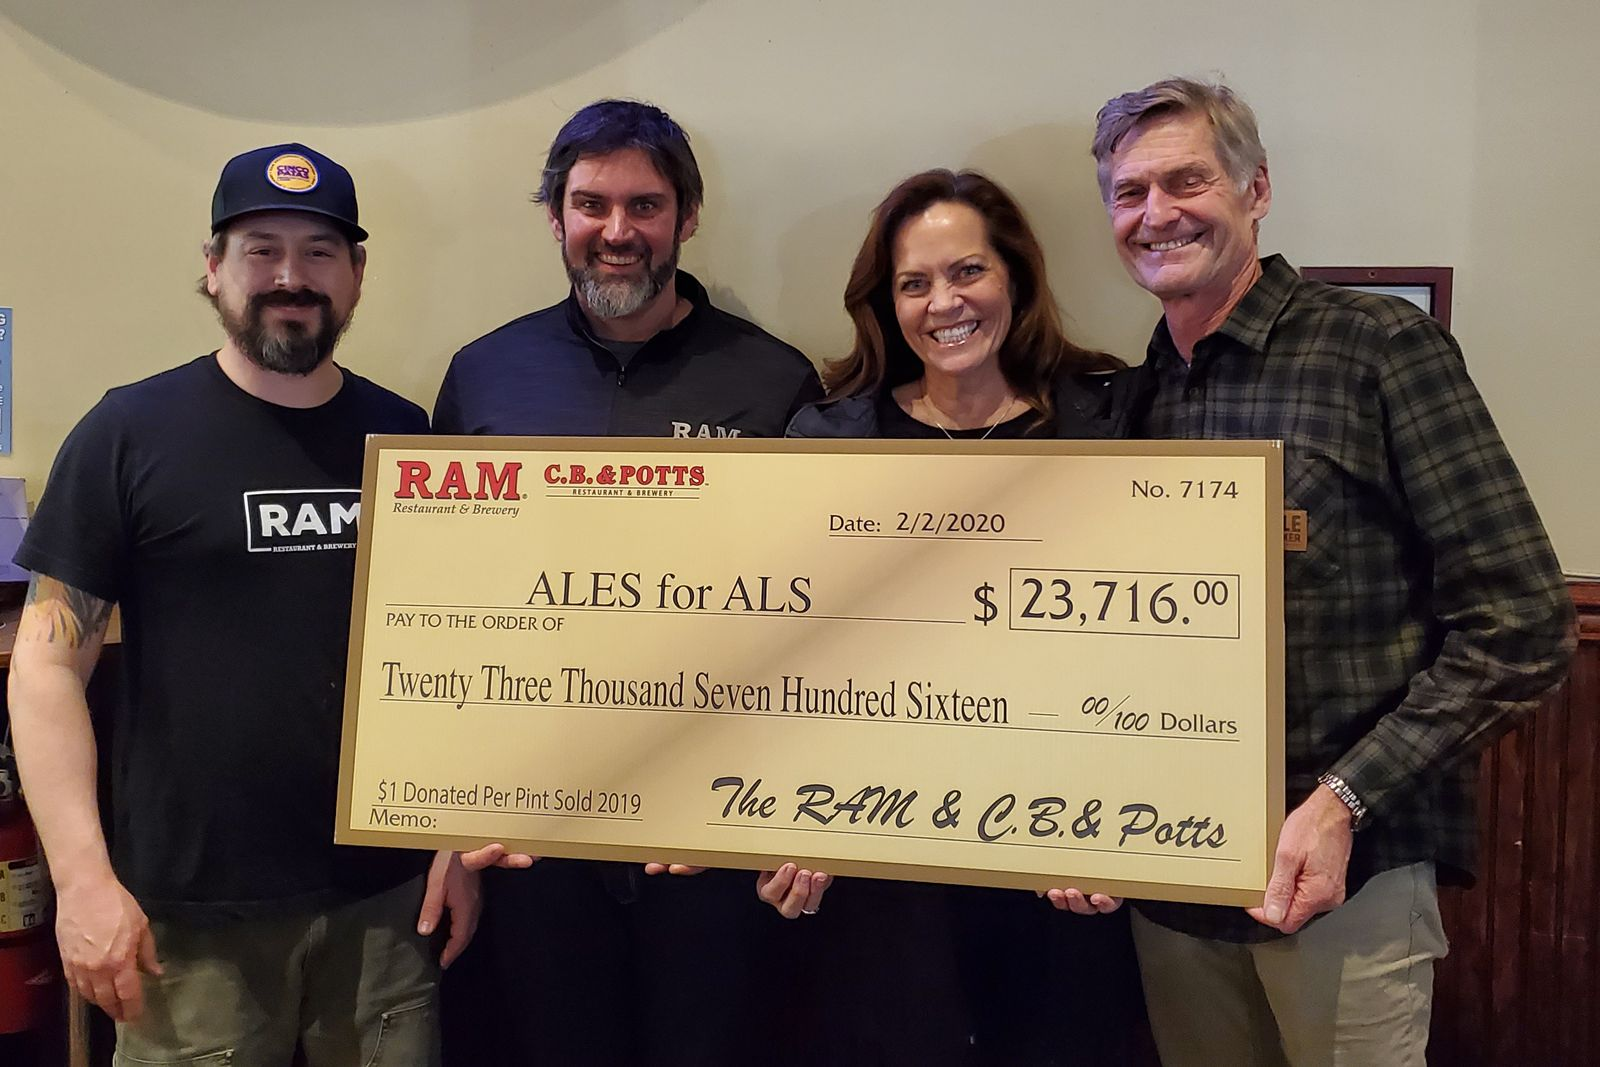 The RAM & C.B. & Potts Restaurants & Breweries Donate $23,716 to Ales for ALS